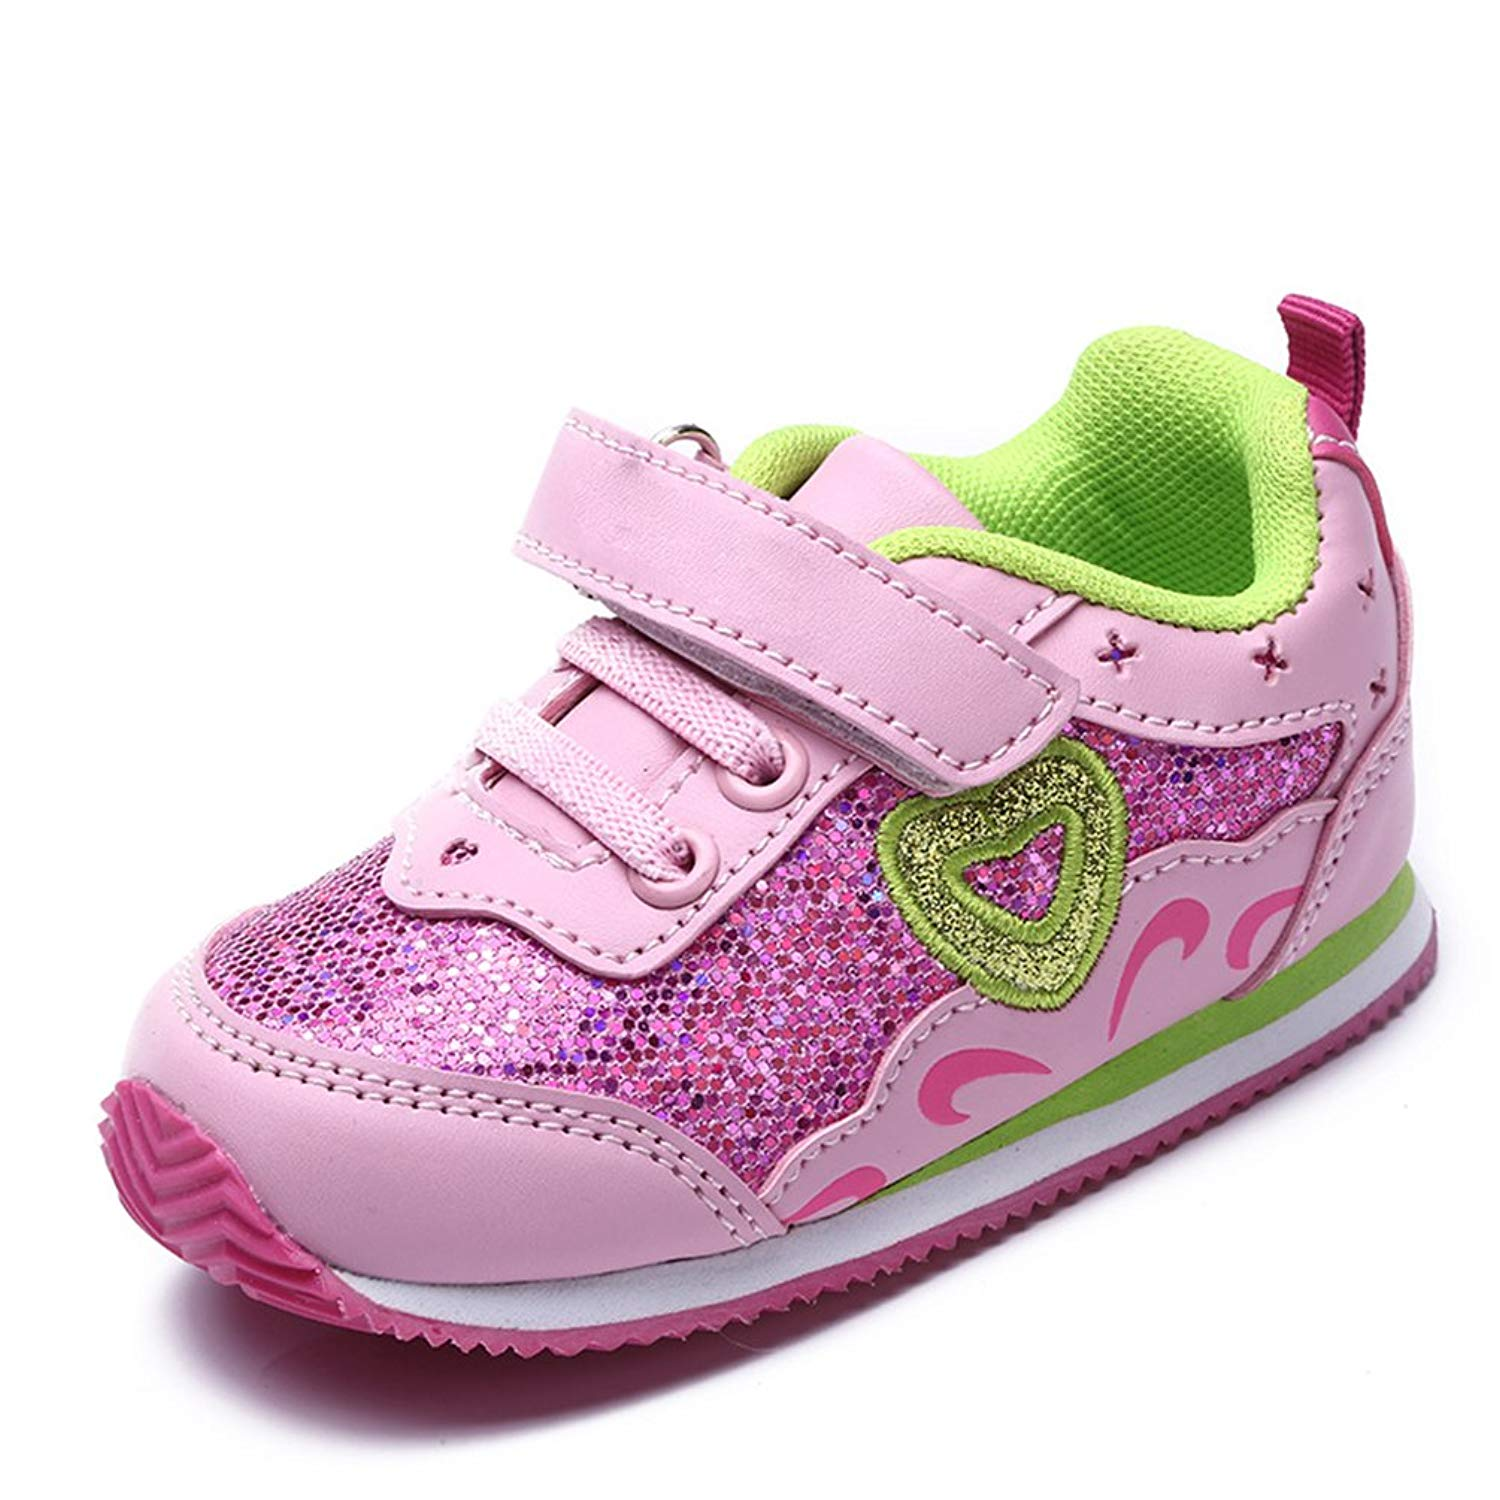 bc4362ab7e37ab Get Quotations · Girls Kids Shoes Purple   Pink Bright Shining Faction Soft  Sole Baby Toddler Shoes Casual Breathable